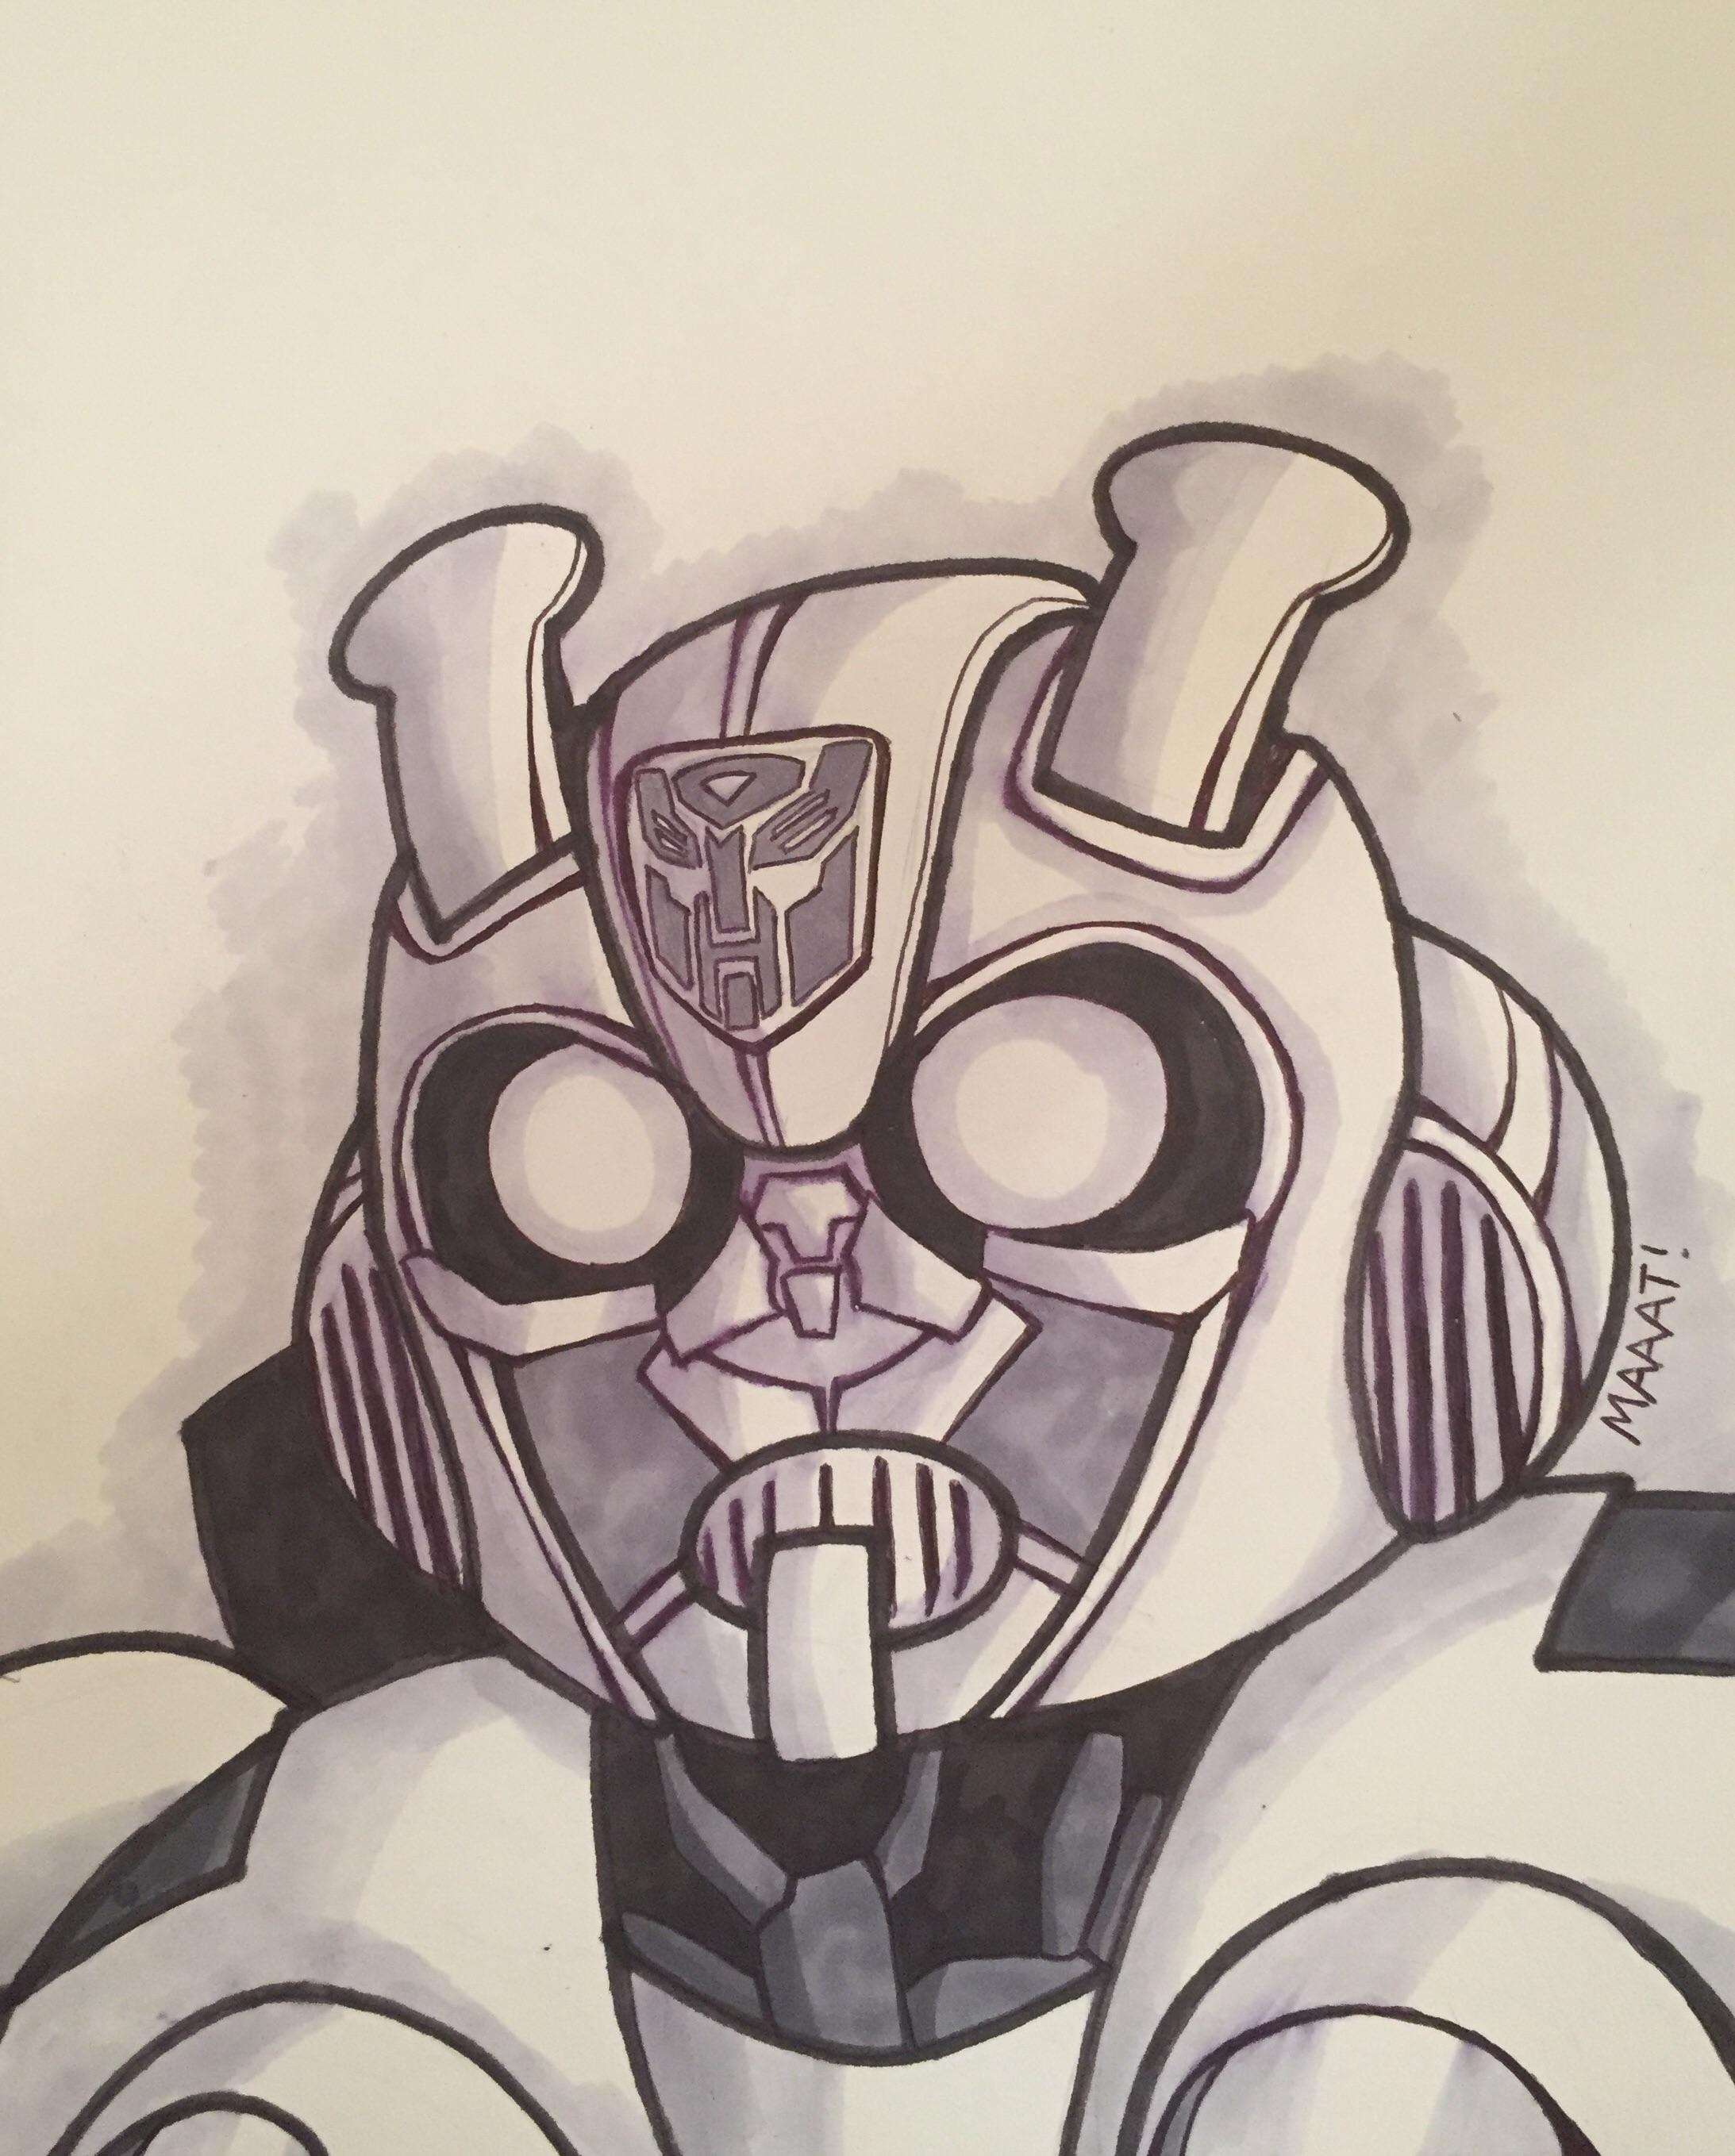 Bumblebee Sketch : bumblebee, sketch, Whipped, Bumblebee, Sketch, Anticipation, Transformers